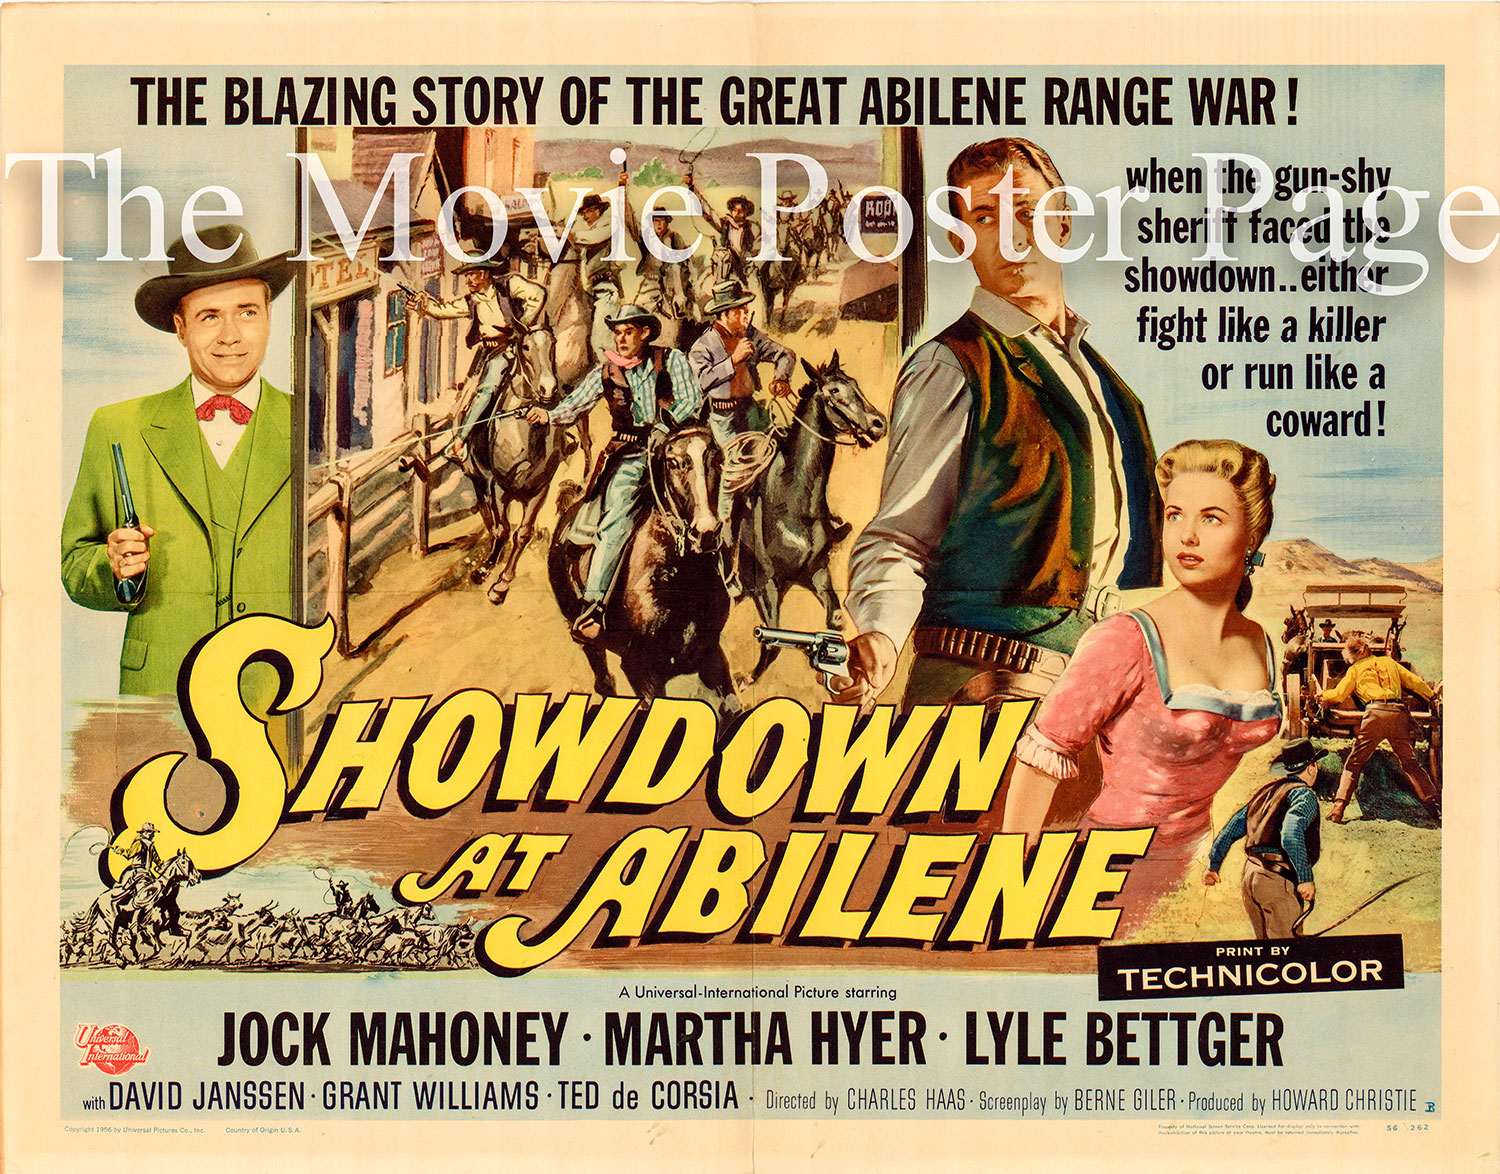 Pictured is a US half-sheet promotional poster for the 1956 Charles F. Haas film Showdown at Abilene starring Jock Mahoney.